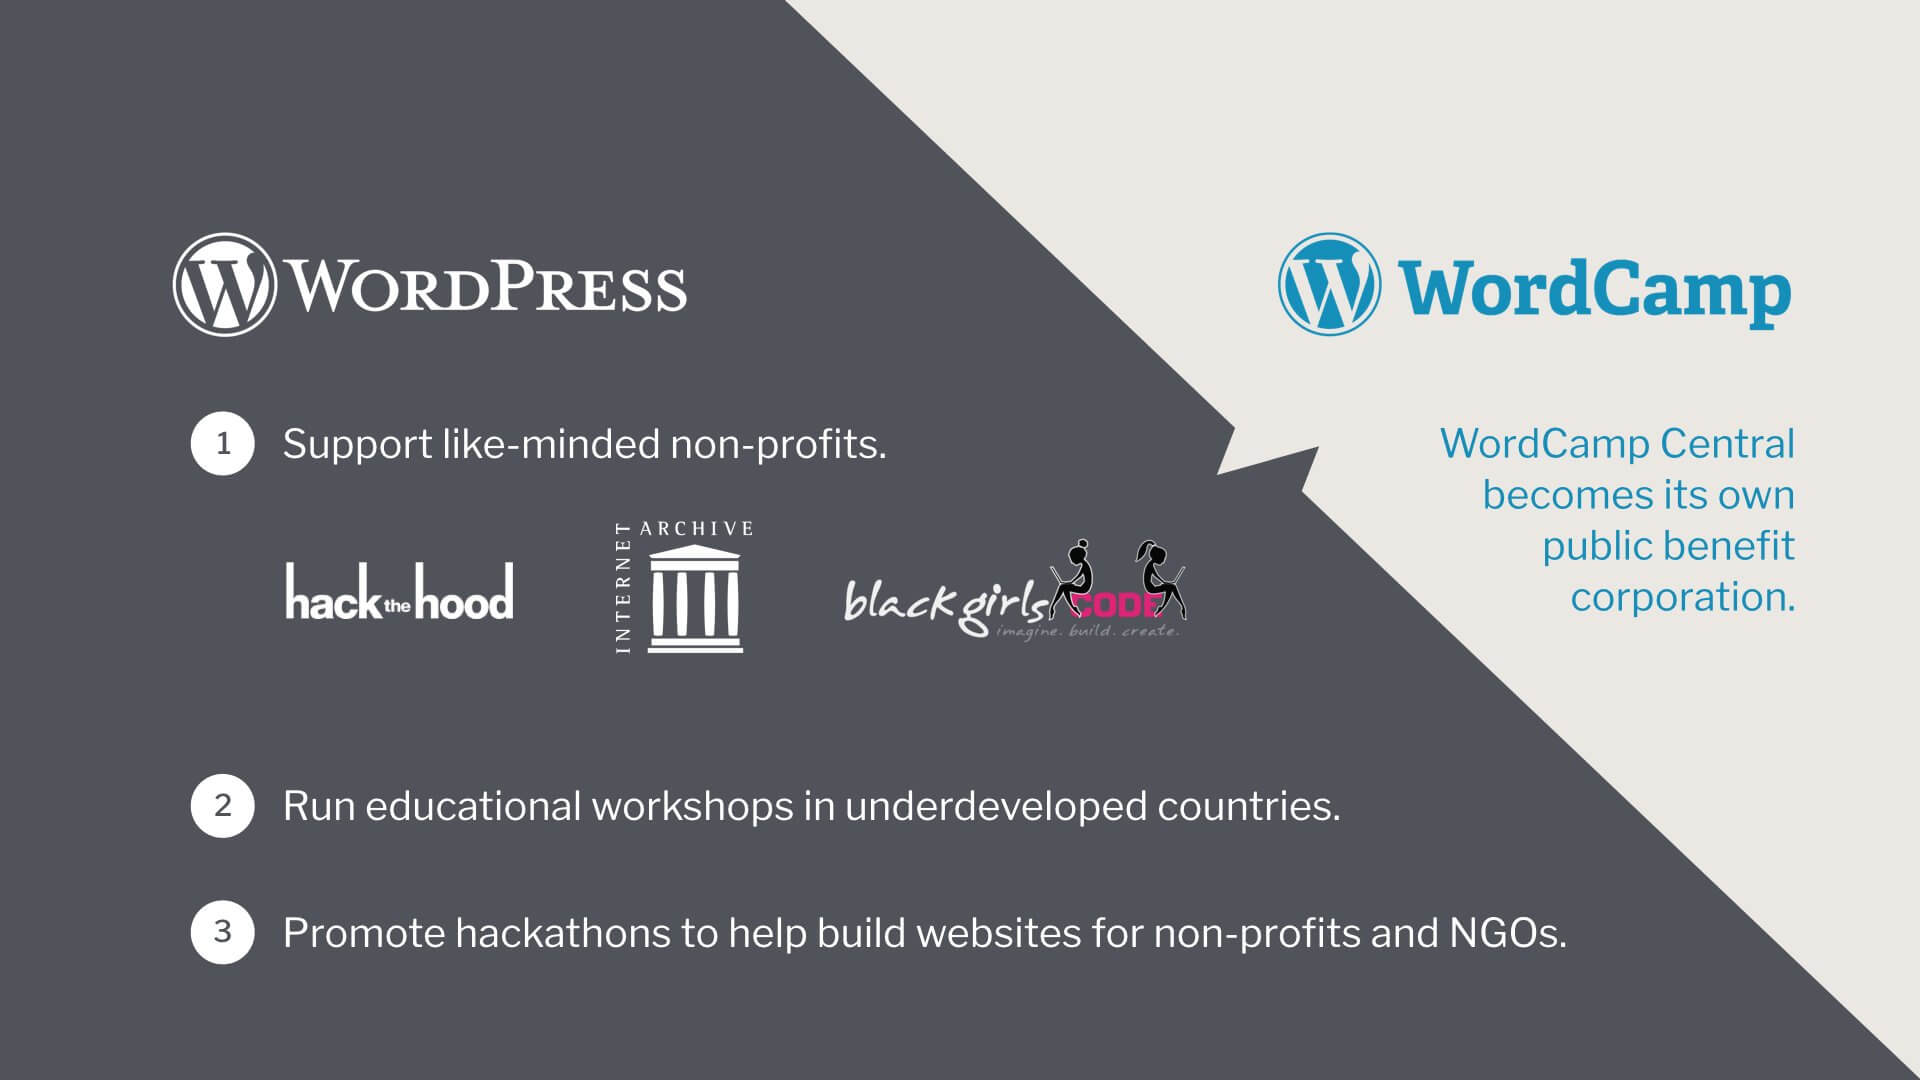 Automattic is transforming WordCamp into a public benefit corporation (PBC) to support like-minded non-profits.